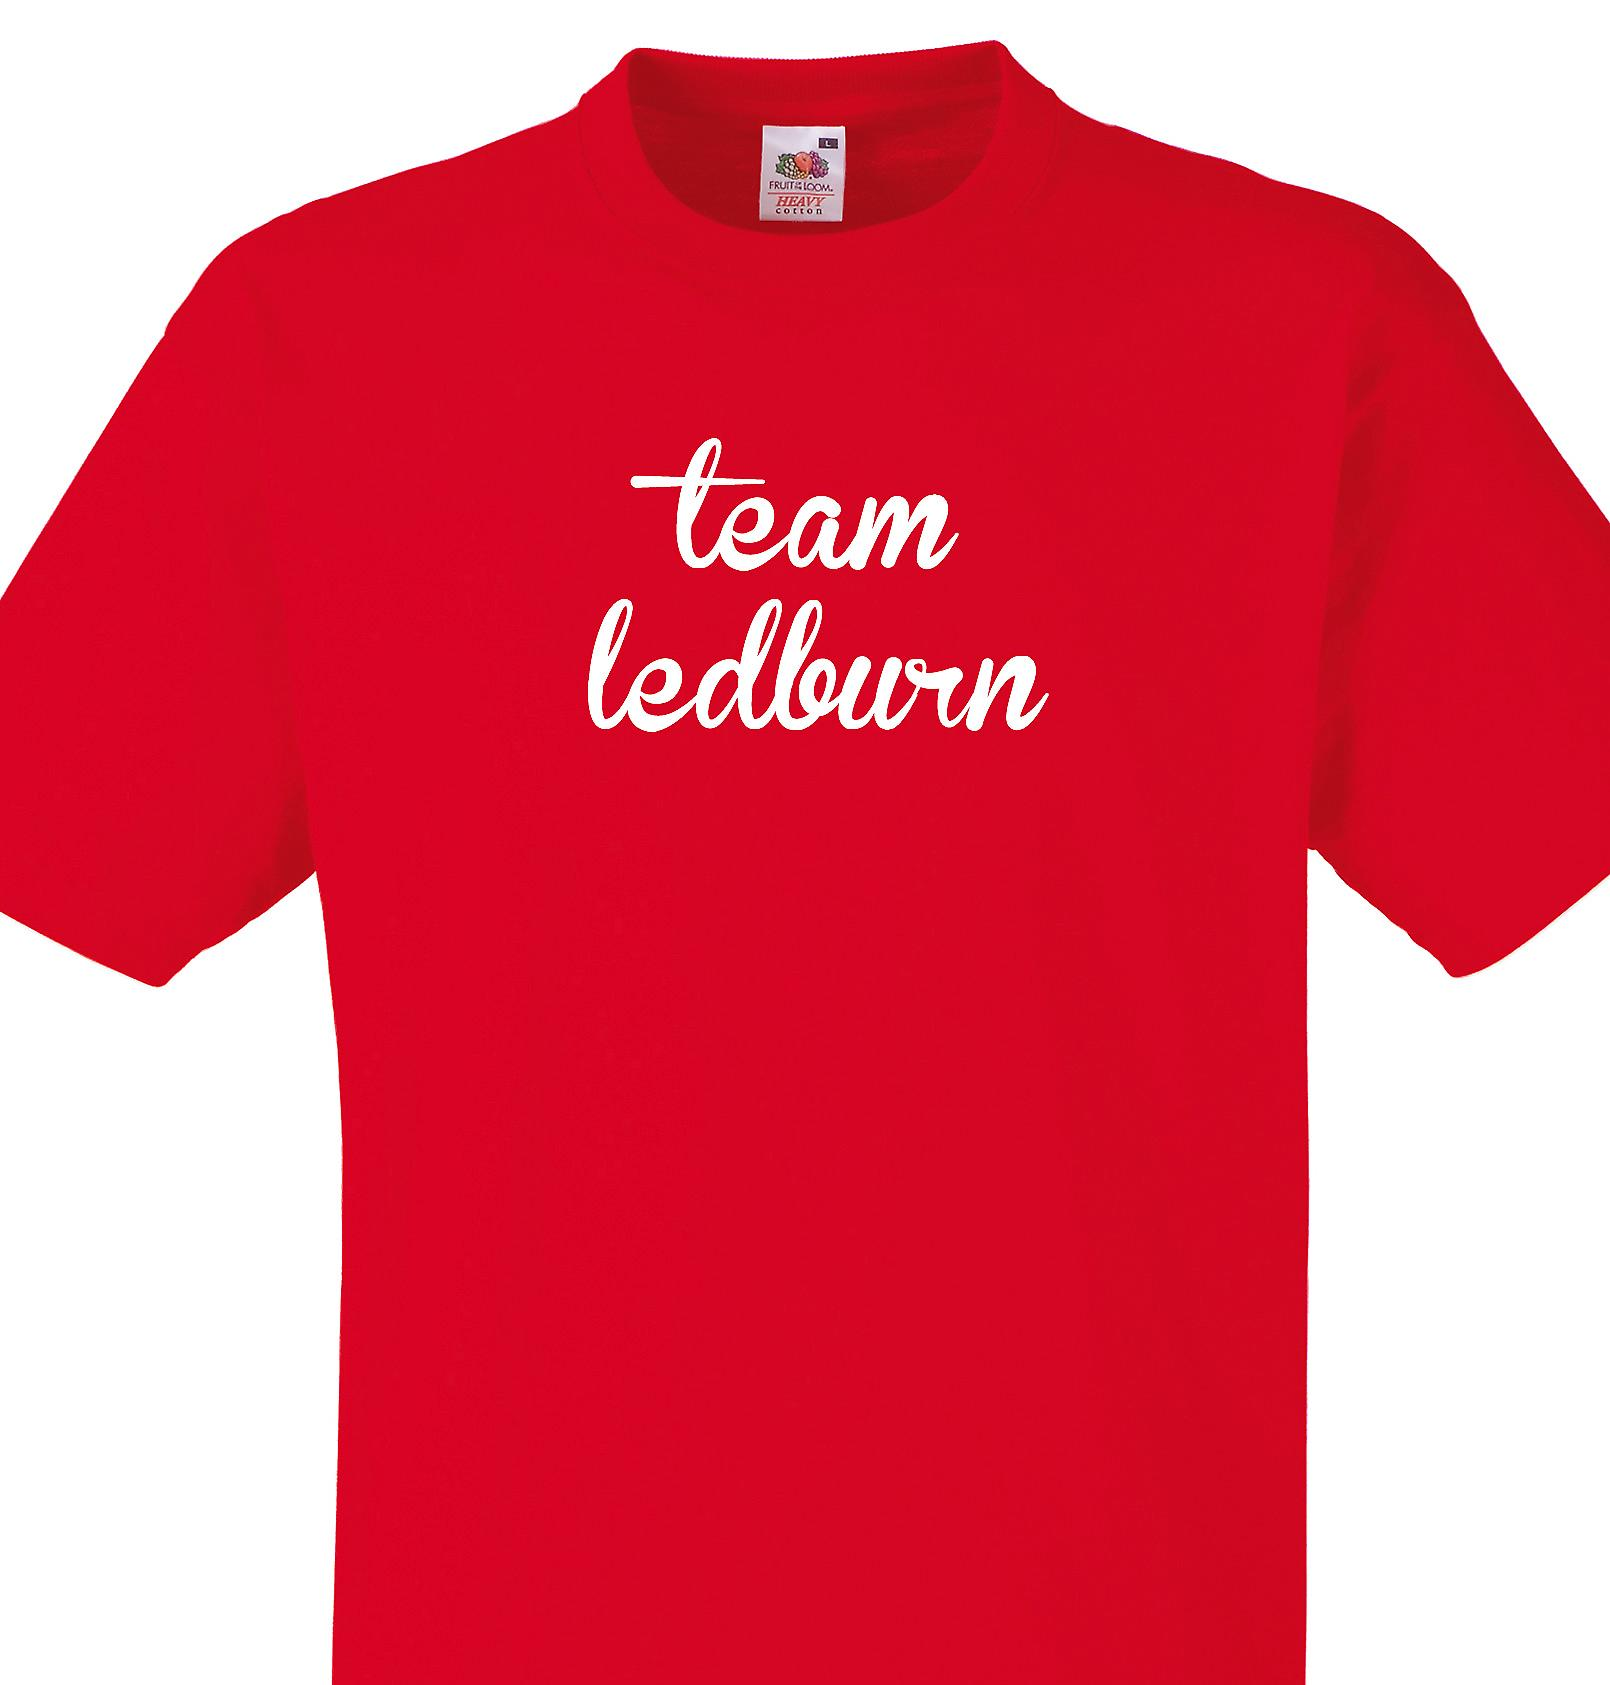 Team Ledburn Red T shirt